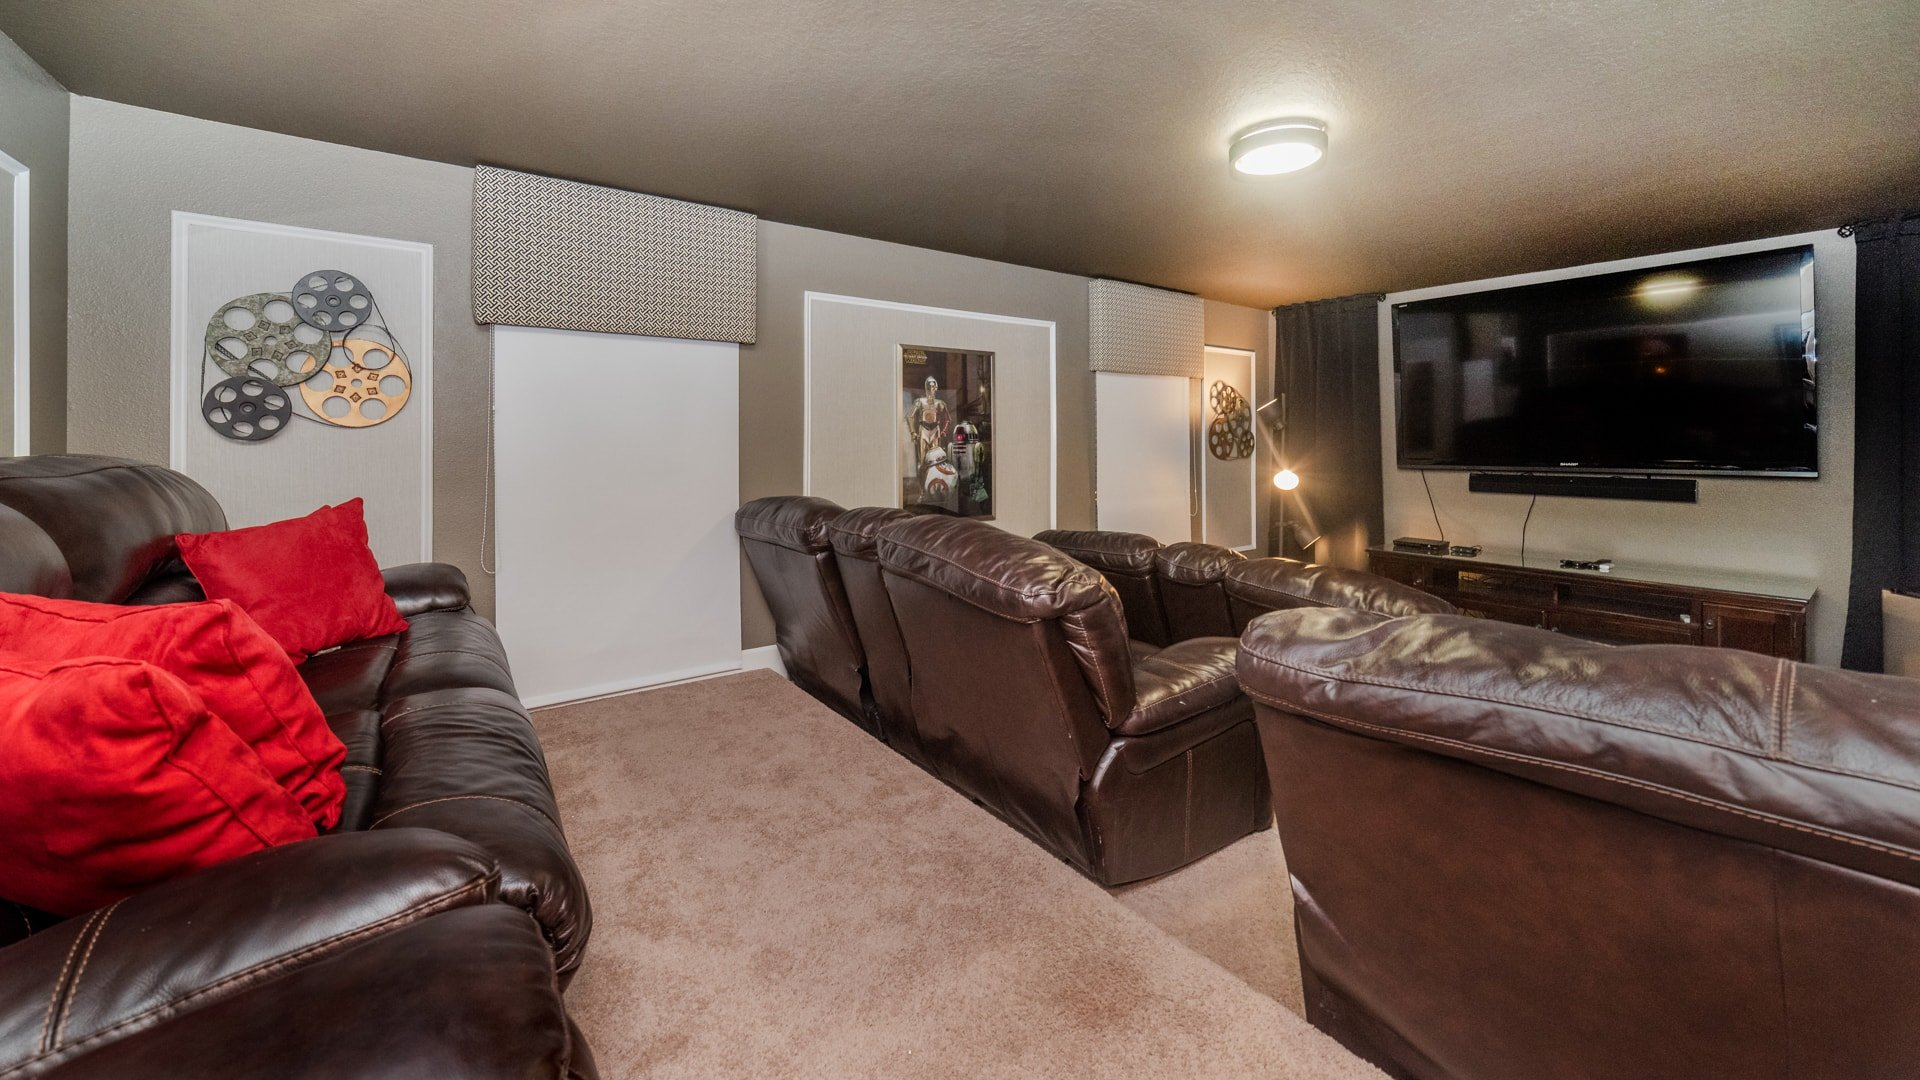 1492 Moon Valley Drive-209828